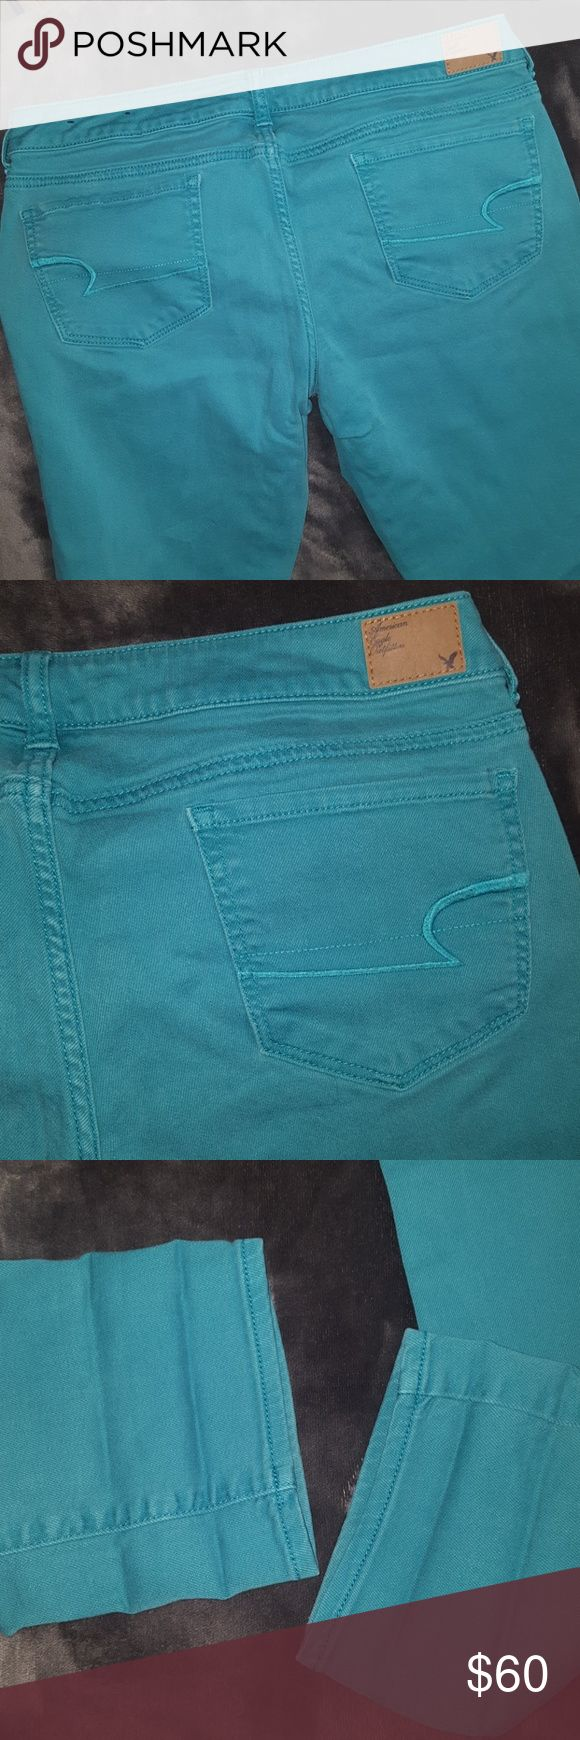 Torquise SKINNY STRETCH JEANS American Eagle NEW Torquise SKINNY STRETCH JEANS American Eagle NEW without Tags ~ Size 14 regular ~ 98% Cotton 2% spandex. GORGEOUS COLOR and perfect for casual or dressy wear. LIMITED TIME COLOR AT ONLY SELECT AE LOCATIONS. I ship daily RISE: 8.5 INCHES inseam: 31 inches American Eagle Outfitters Jeans Skinny